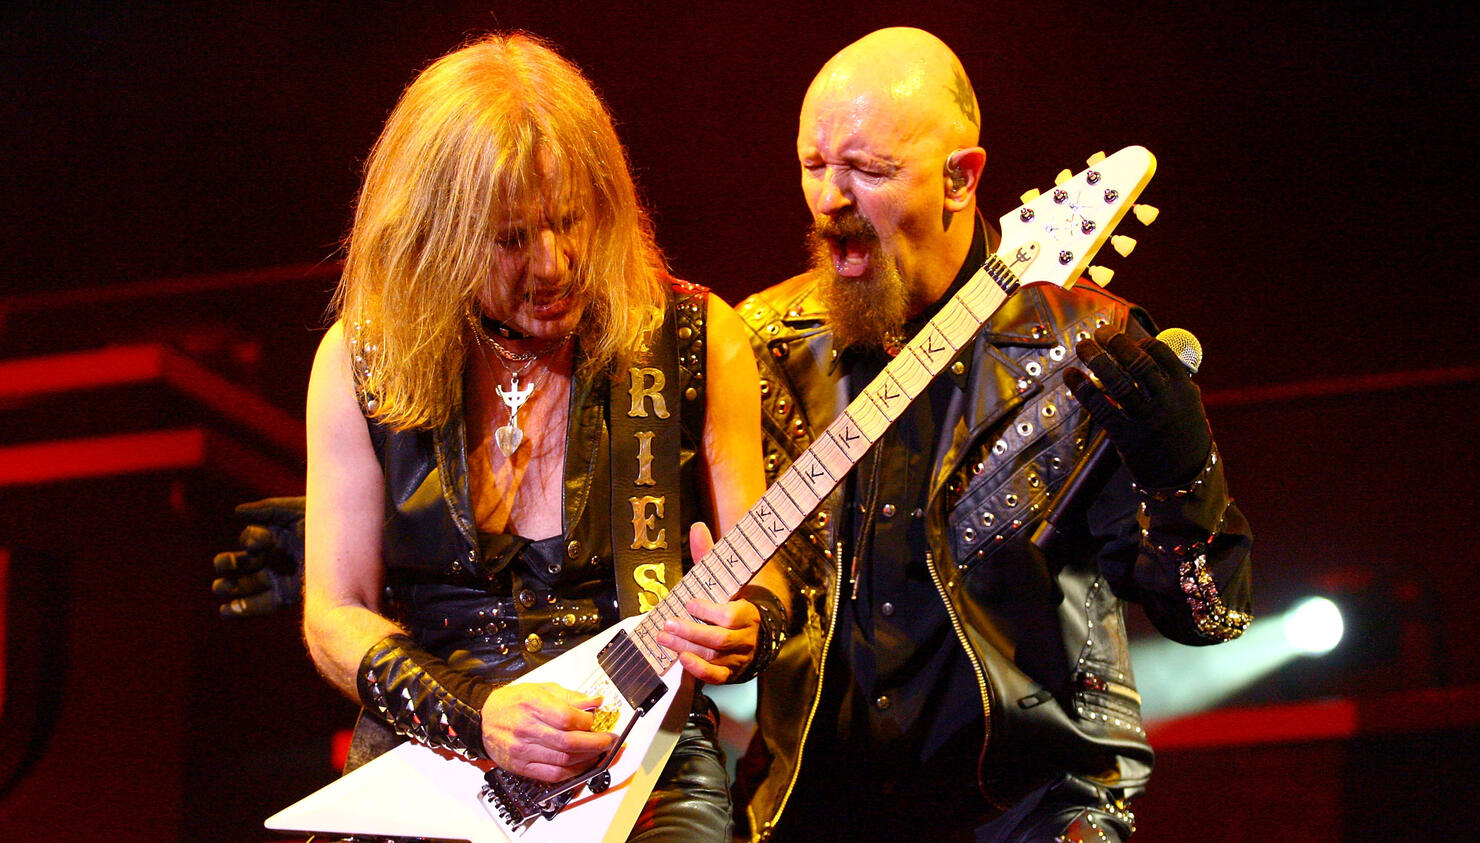 K.K. Downing Believes He Has the Right to Rejoin Judas Priest if He Wants